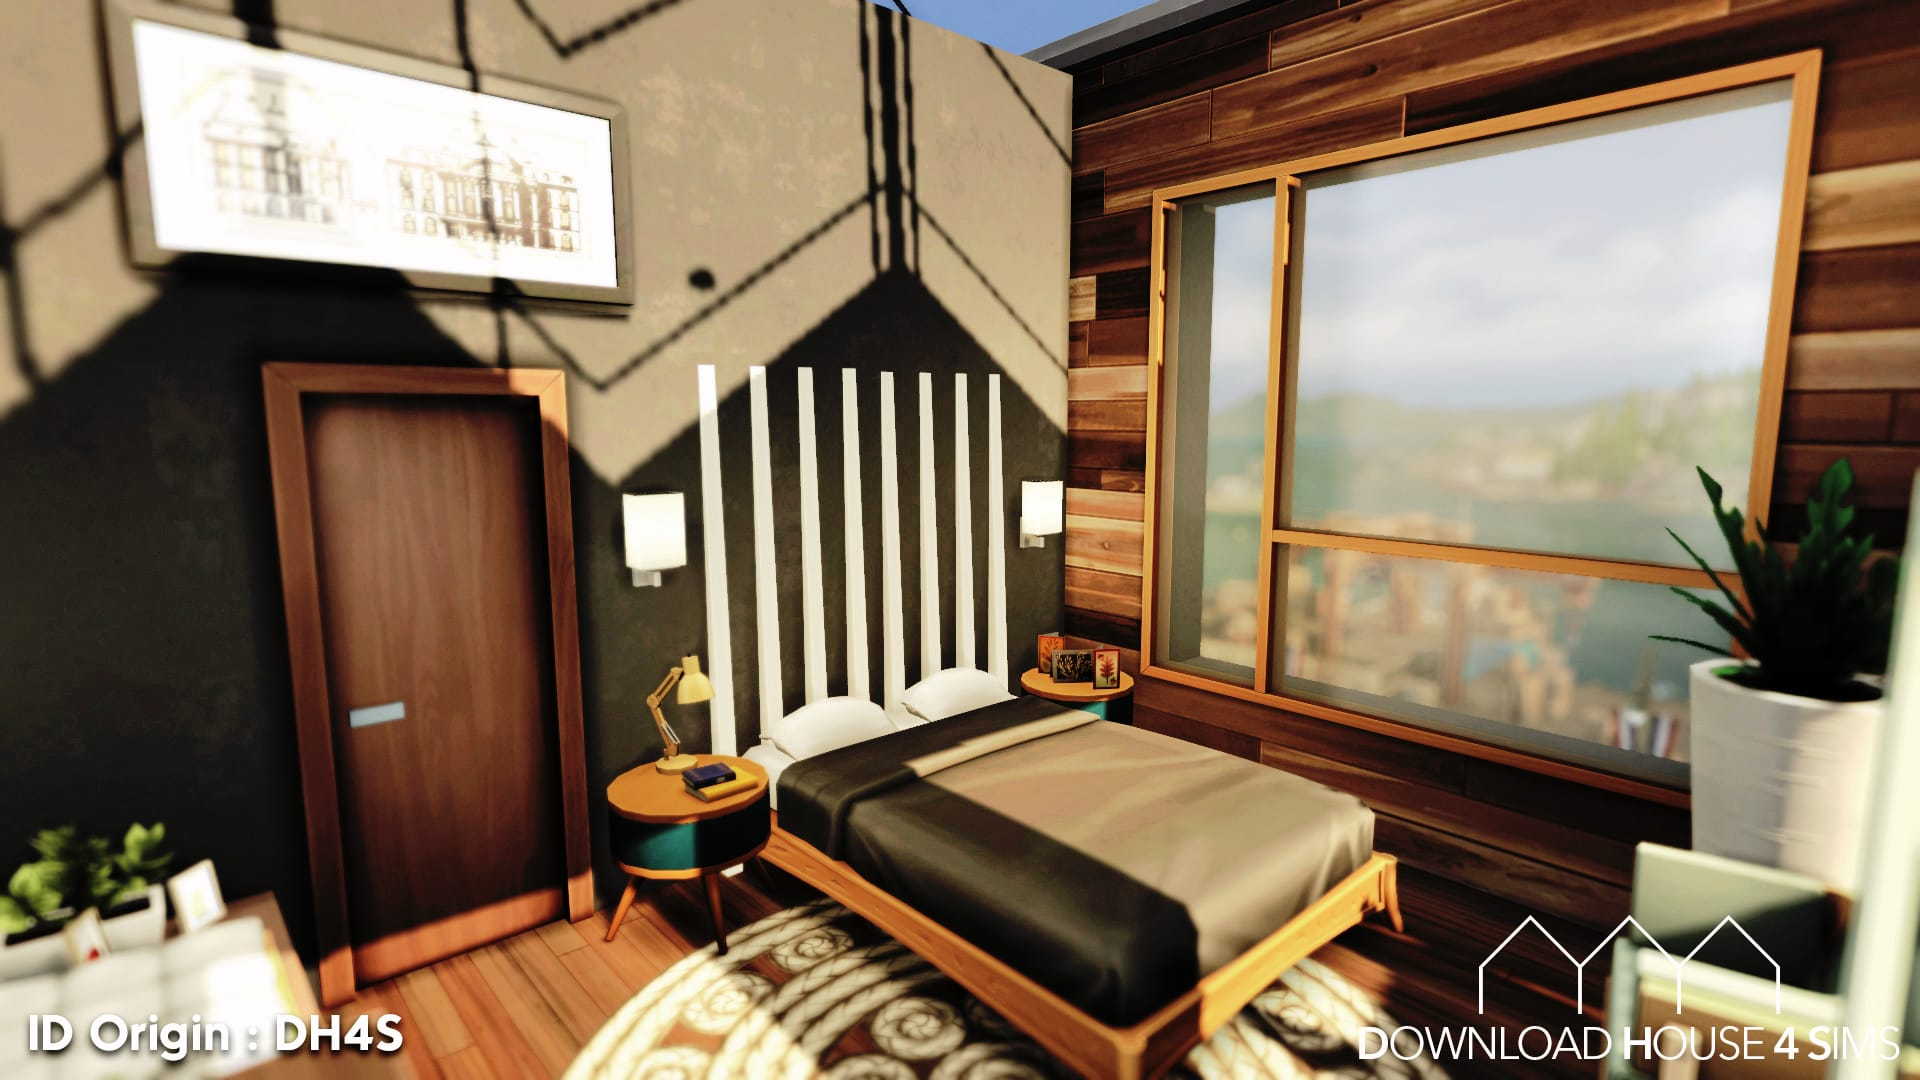 DH4S-Download-house-for-sims-dock-container-eco-house-26